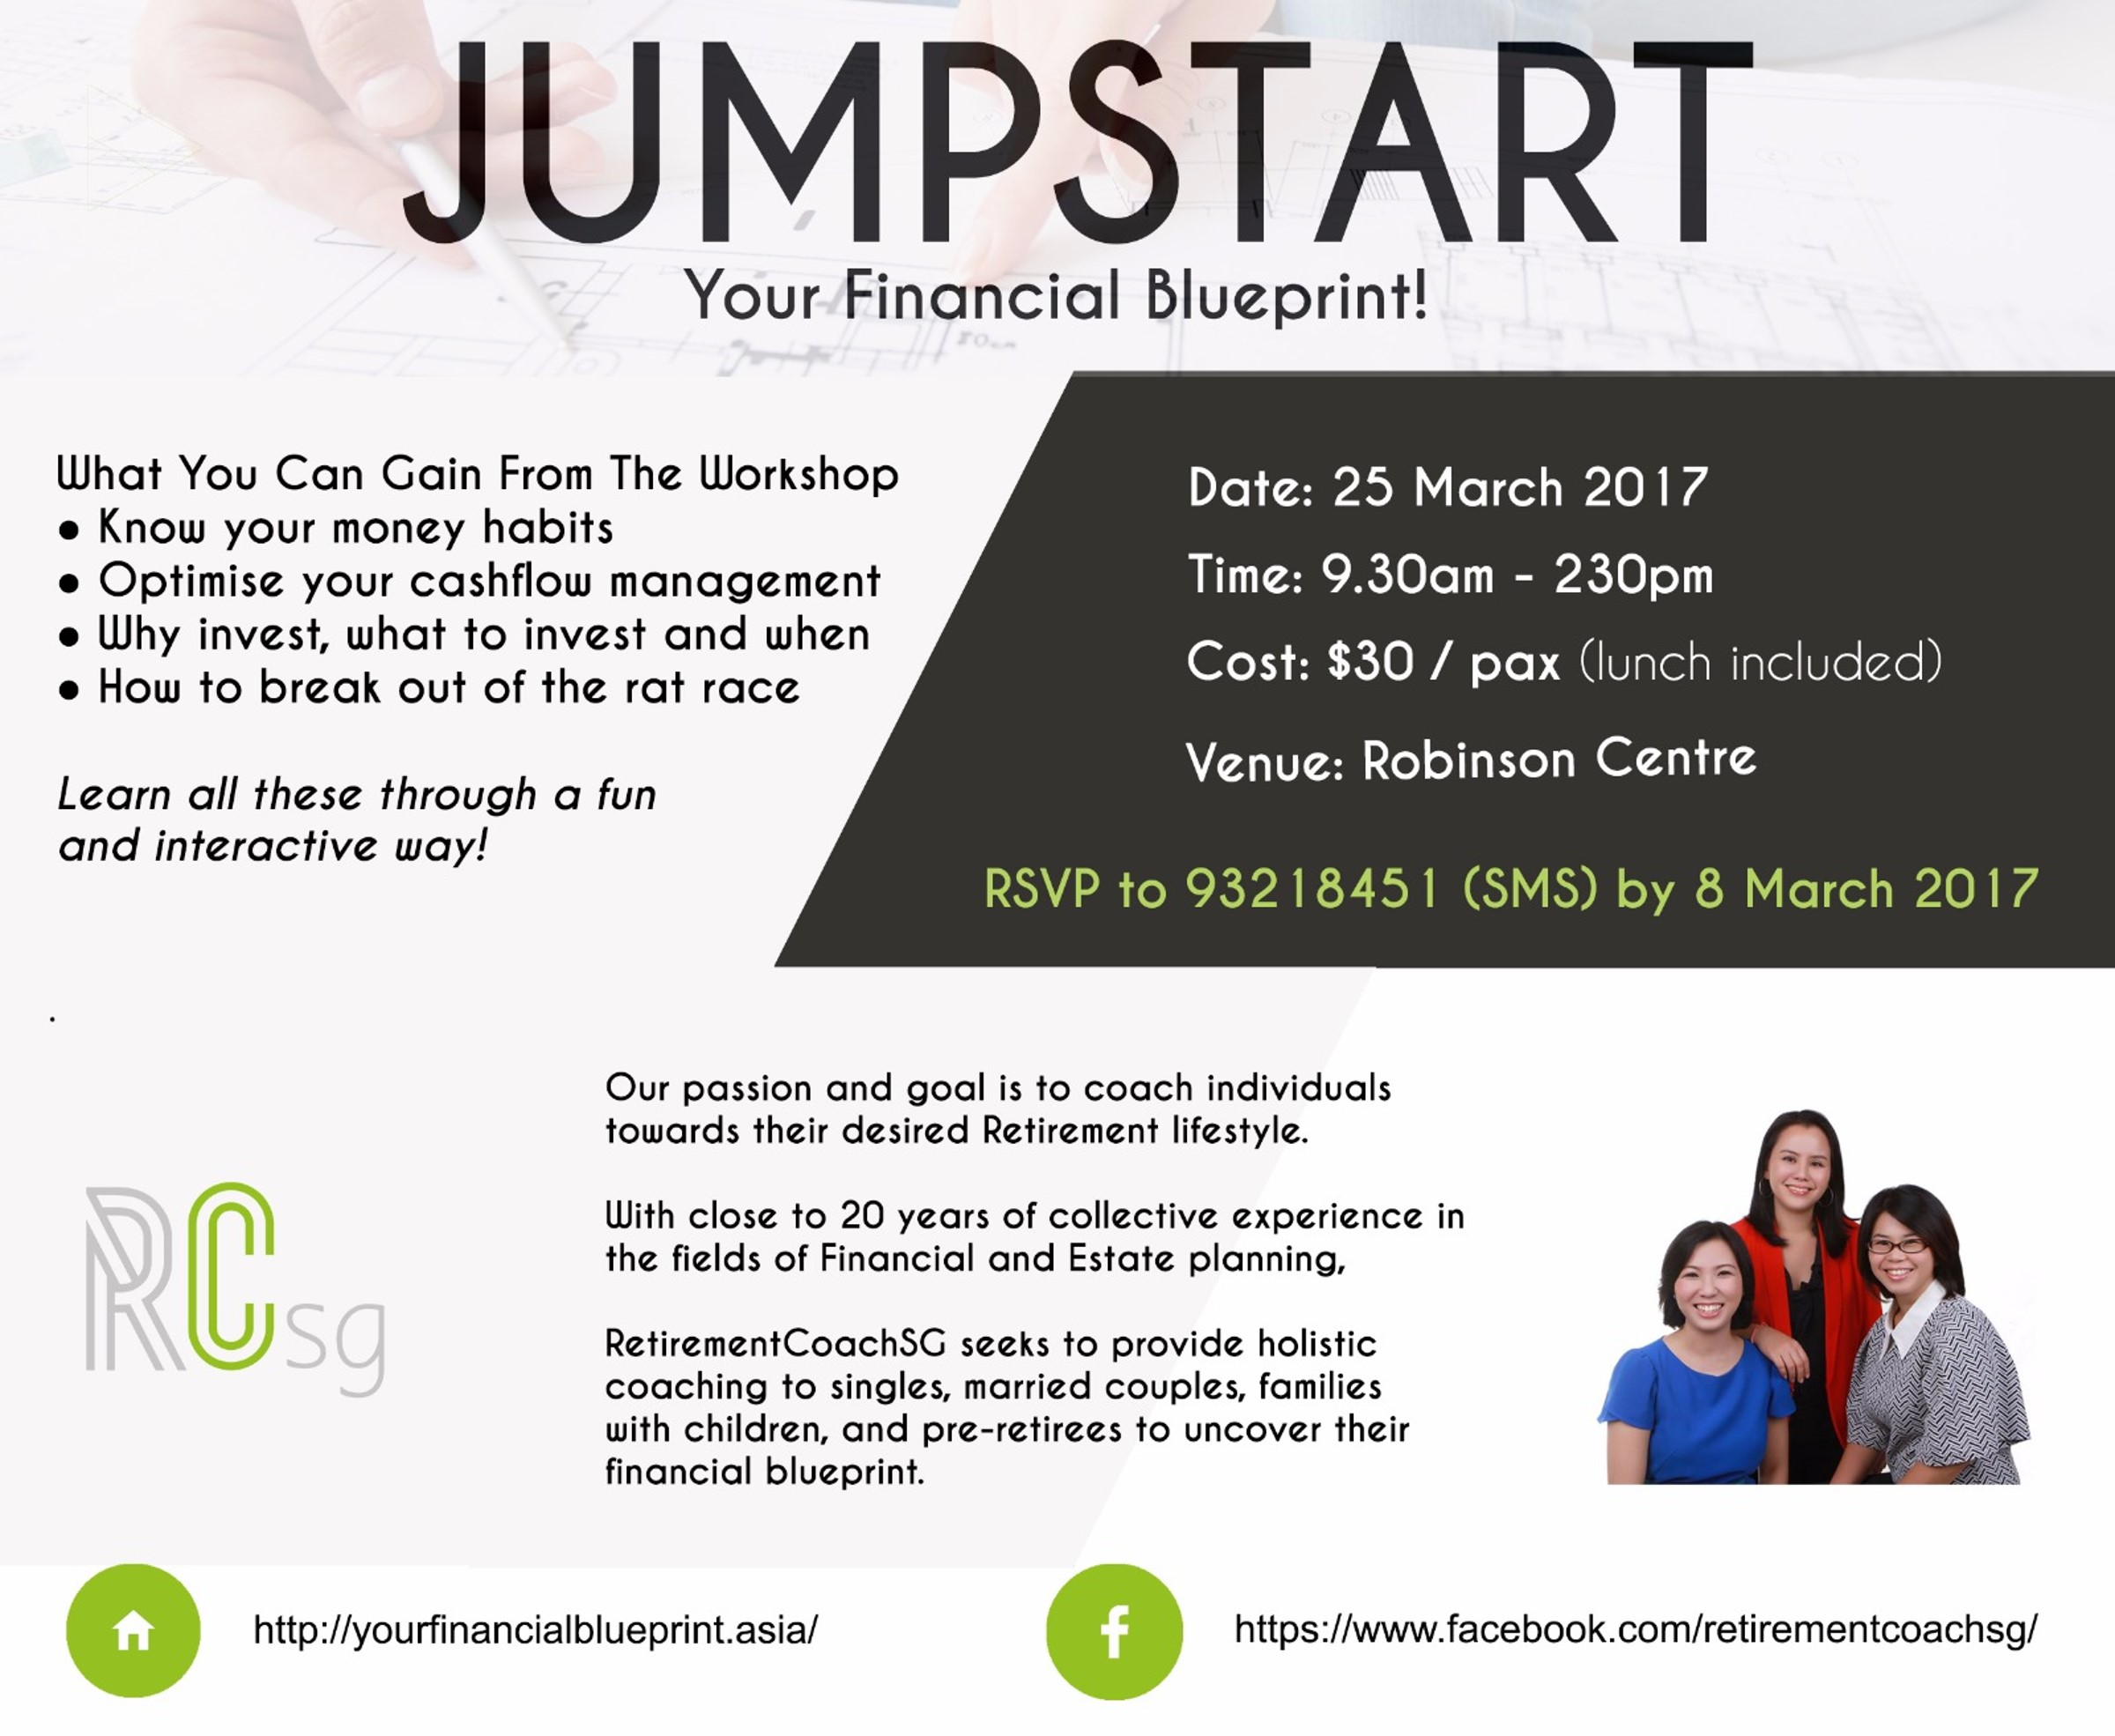 Jumpstart Your Financial Blueprint